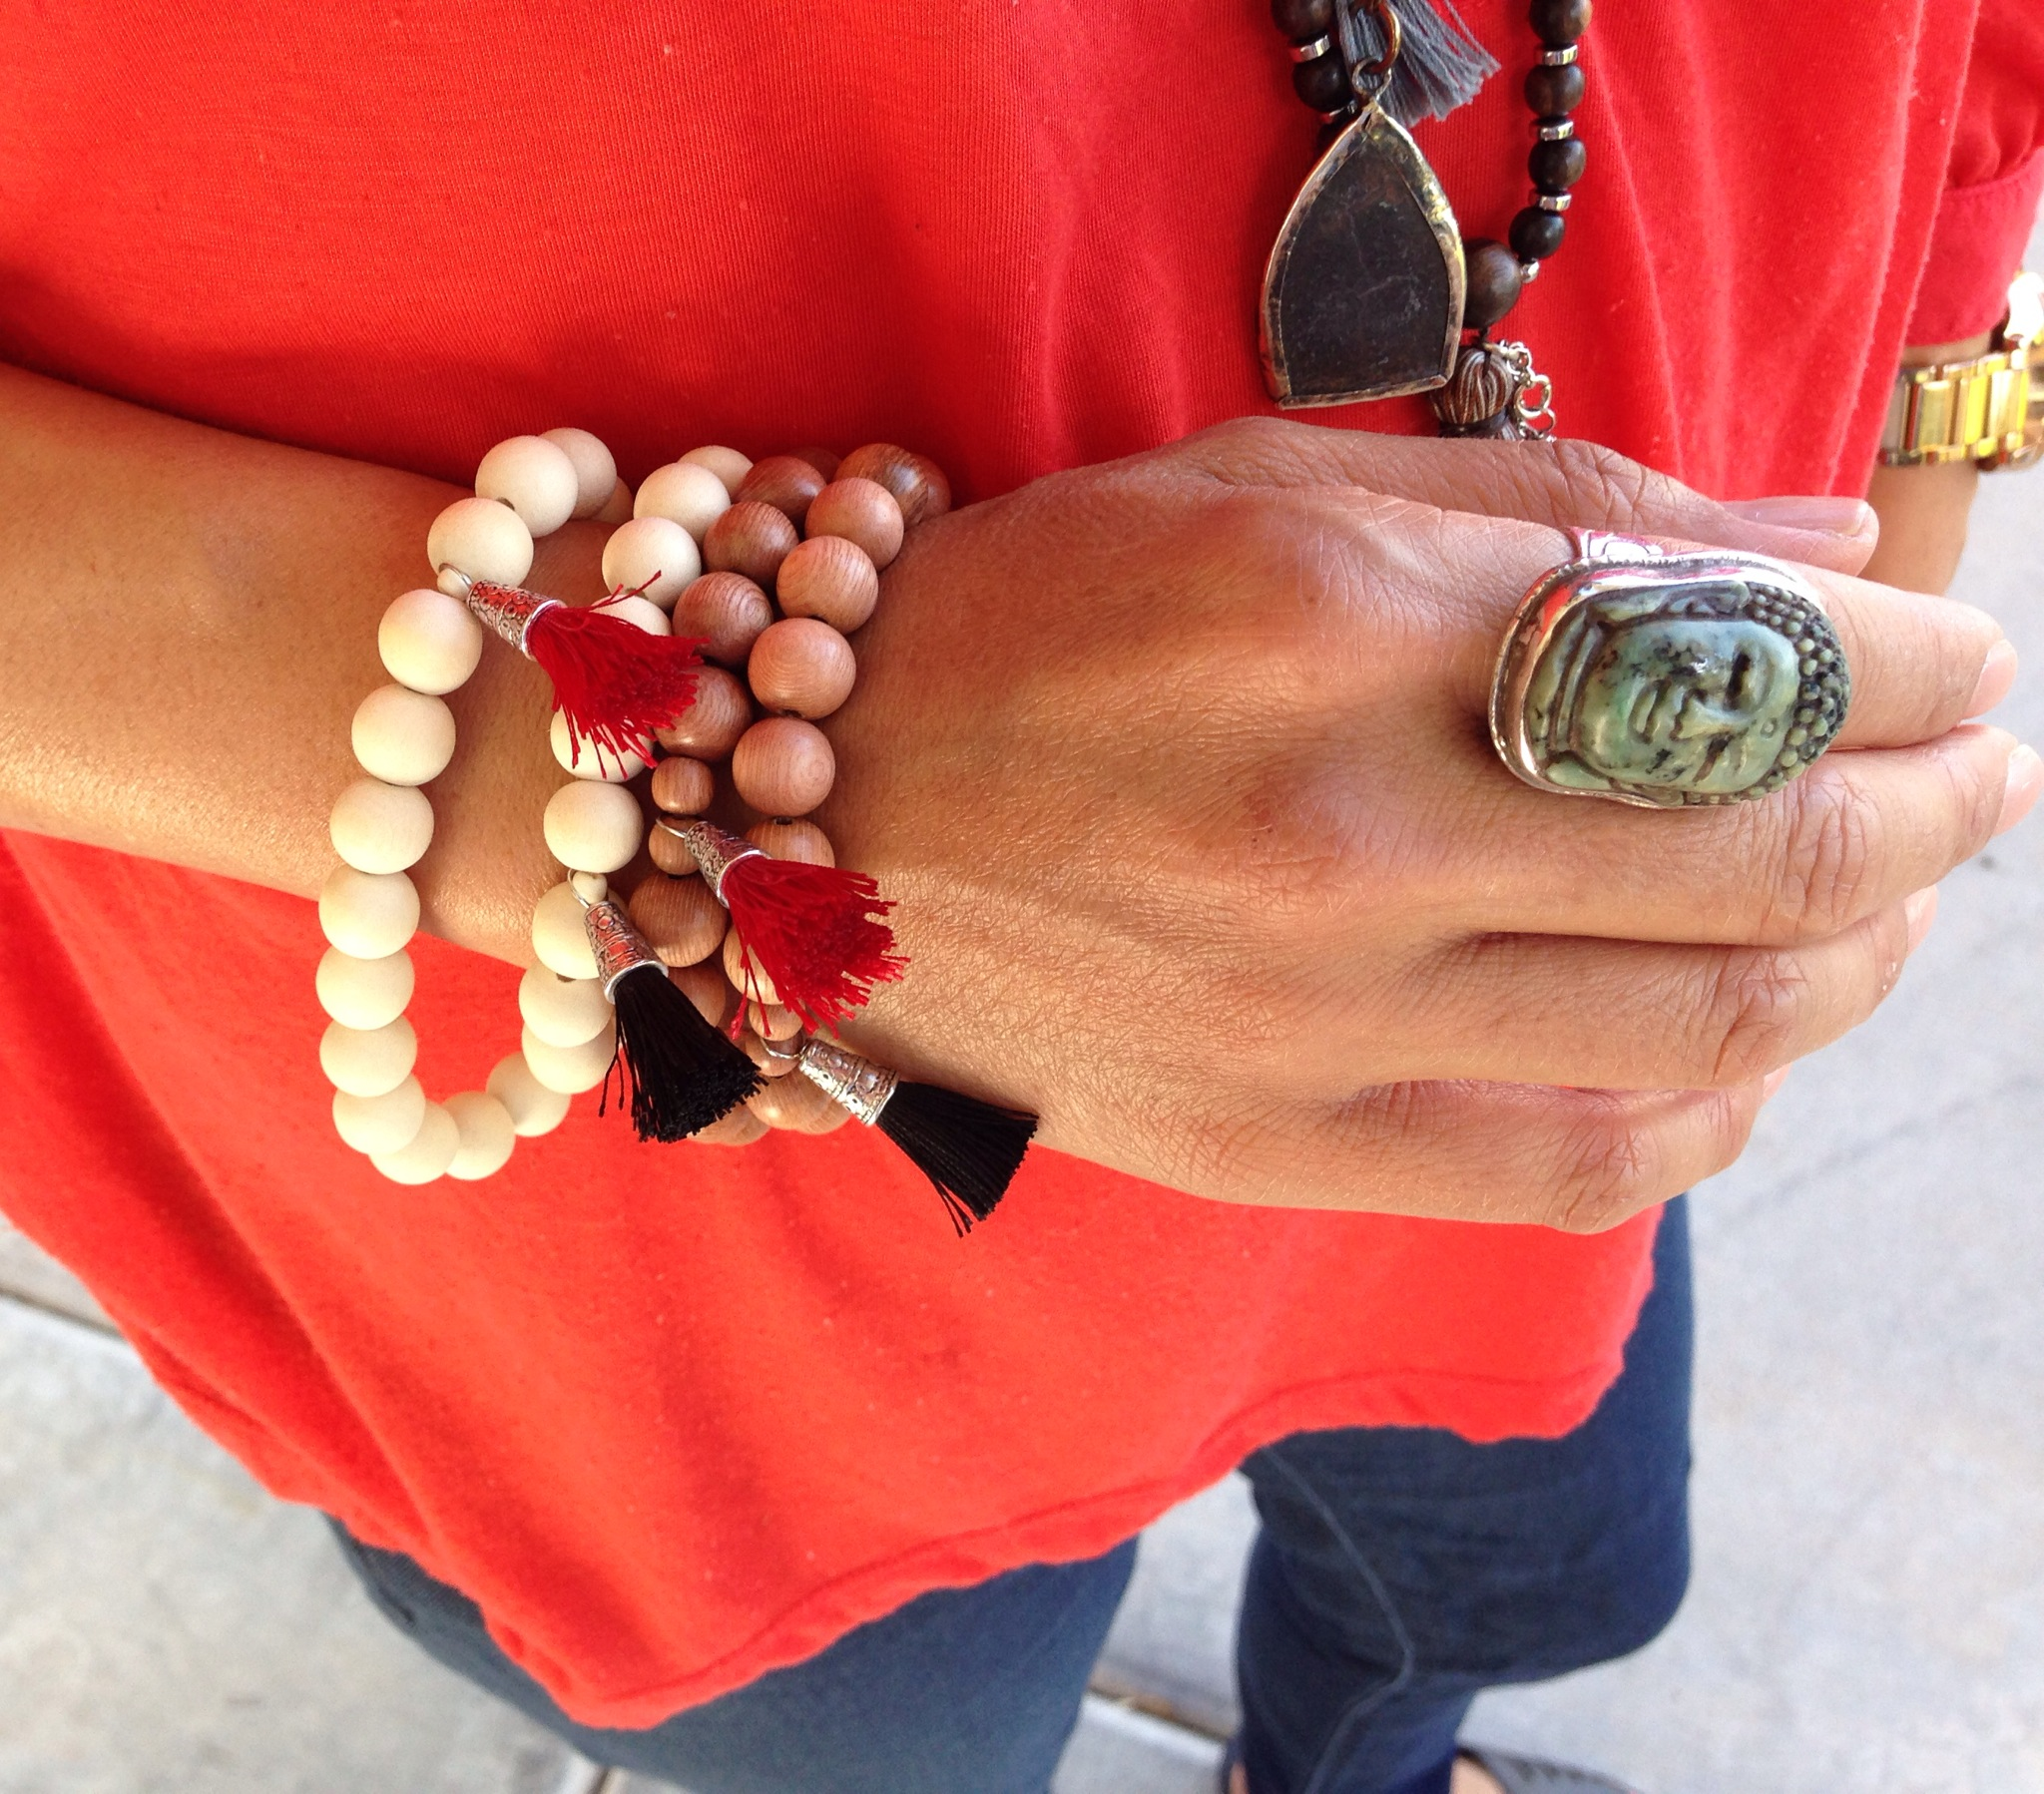 Sustainable mala bead bracelets from our upcoming Moda Mala collection.